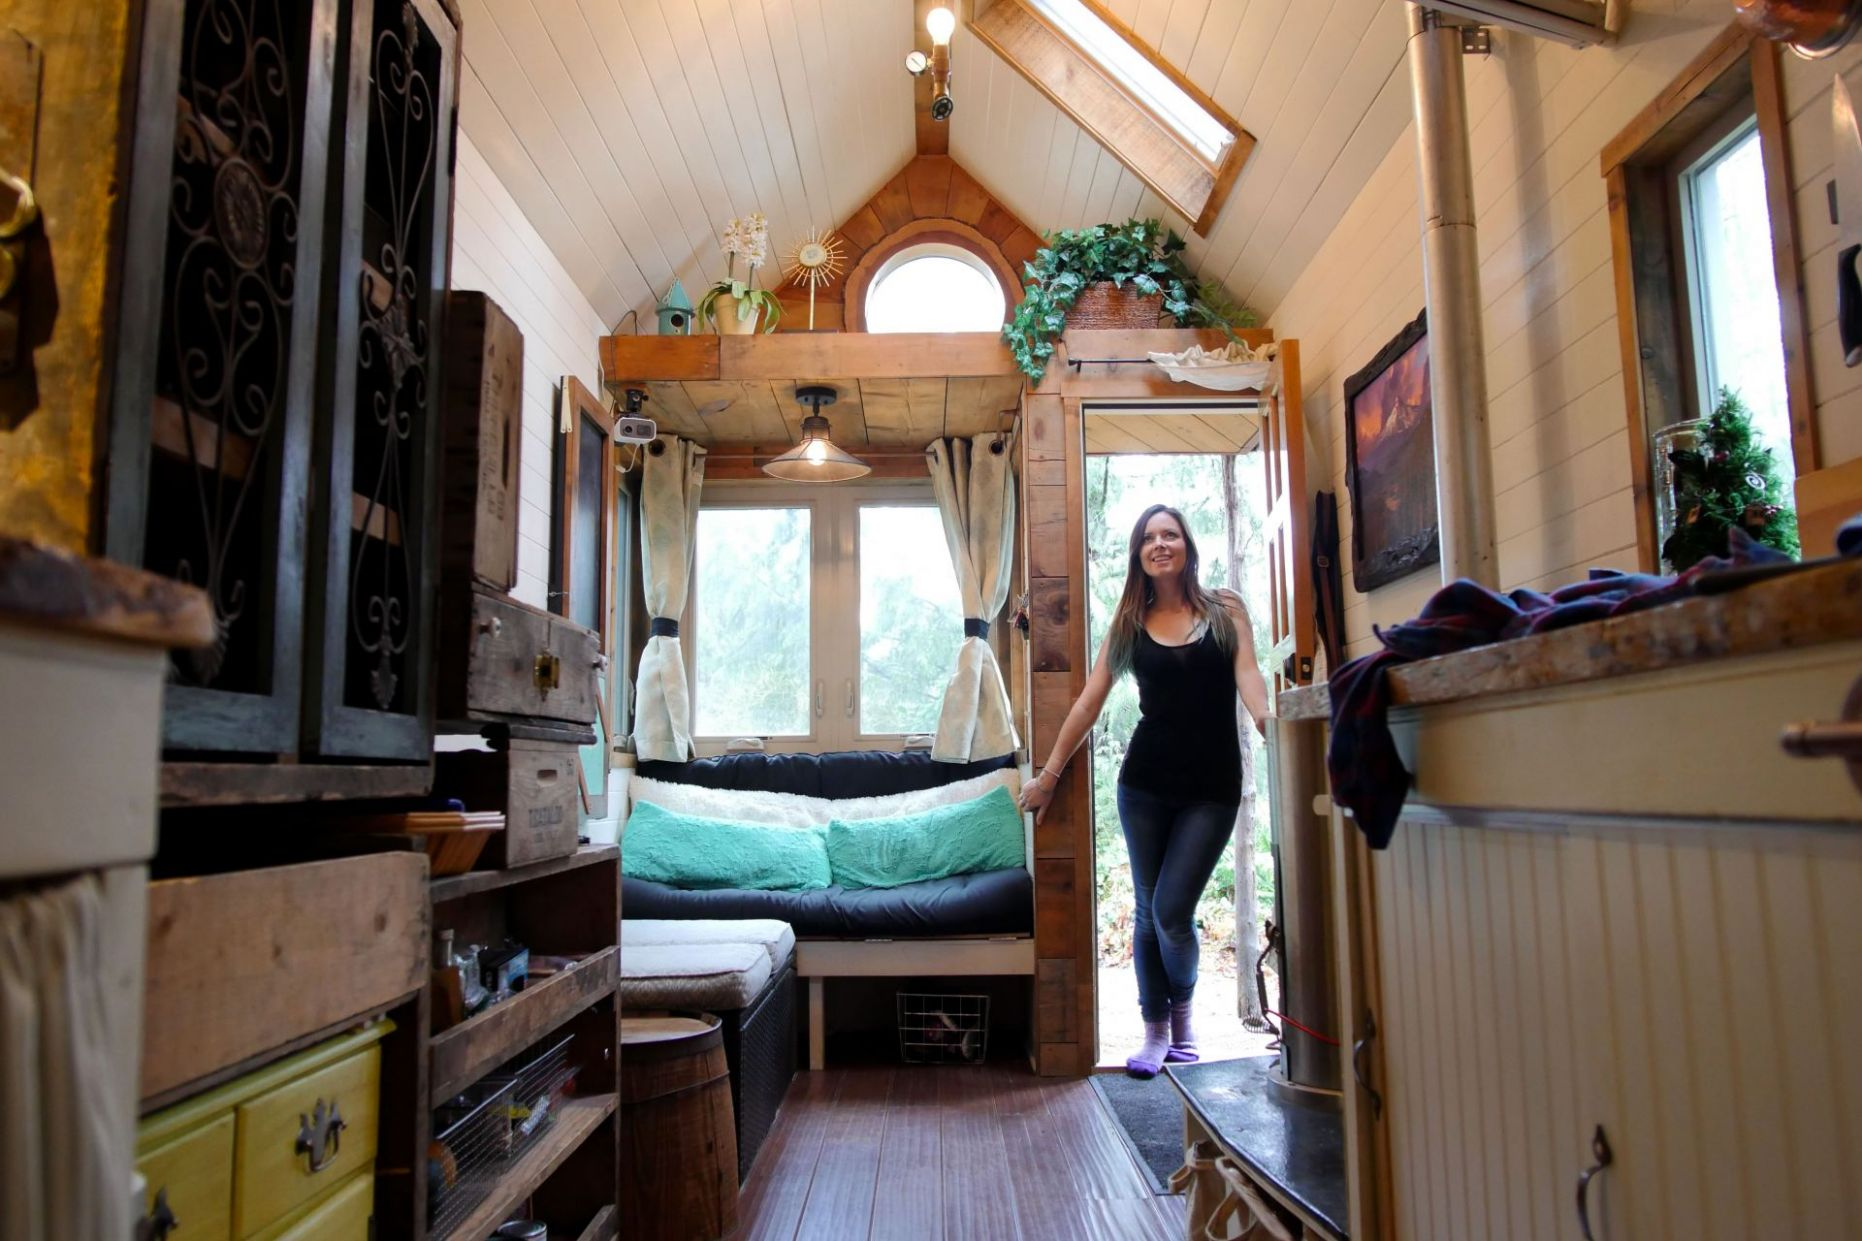 Is the Tiny House Movement Going to Fail in the Next Few Years? - tiny house movement